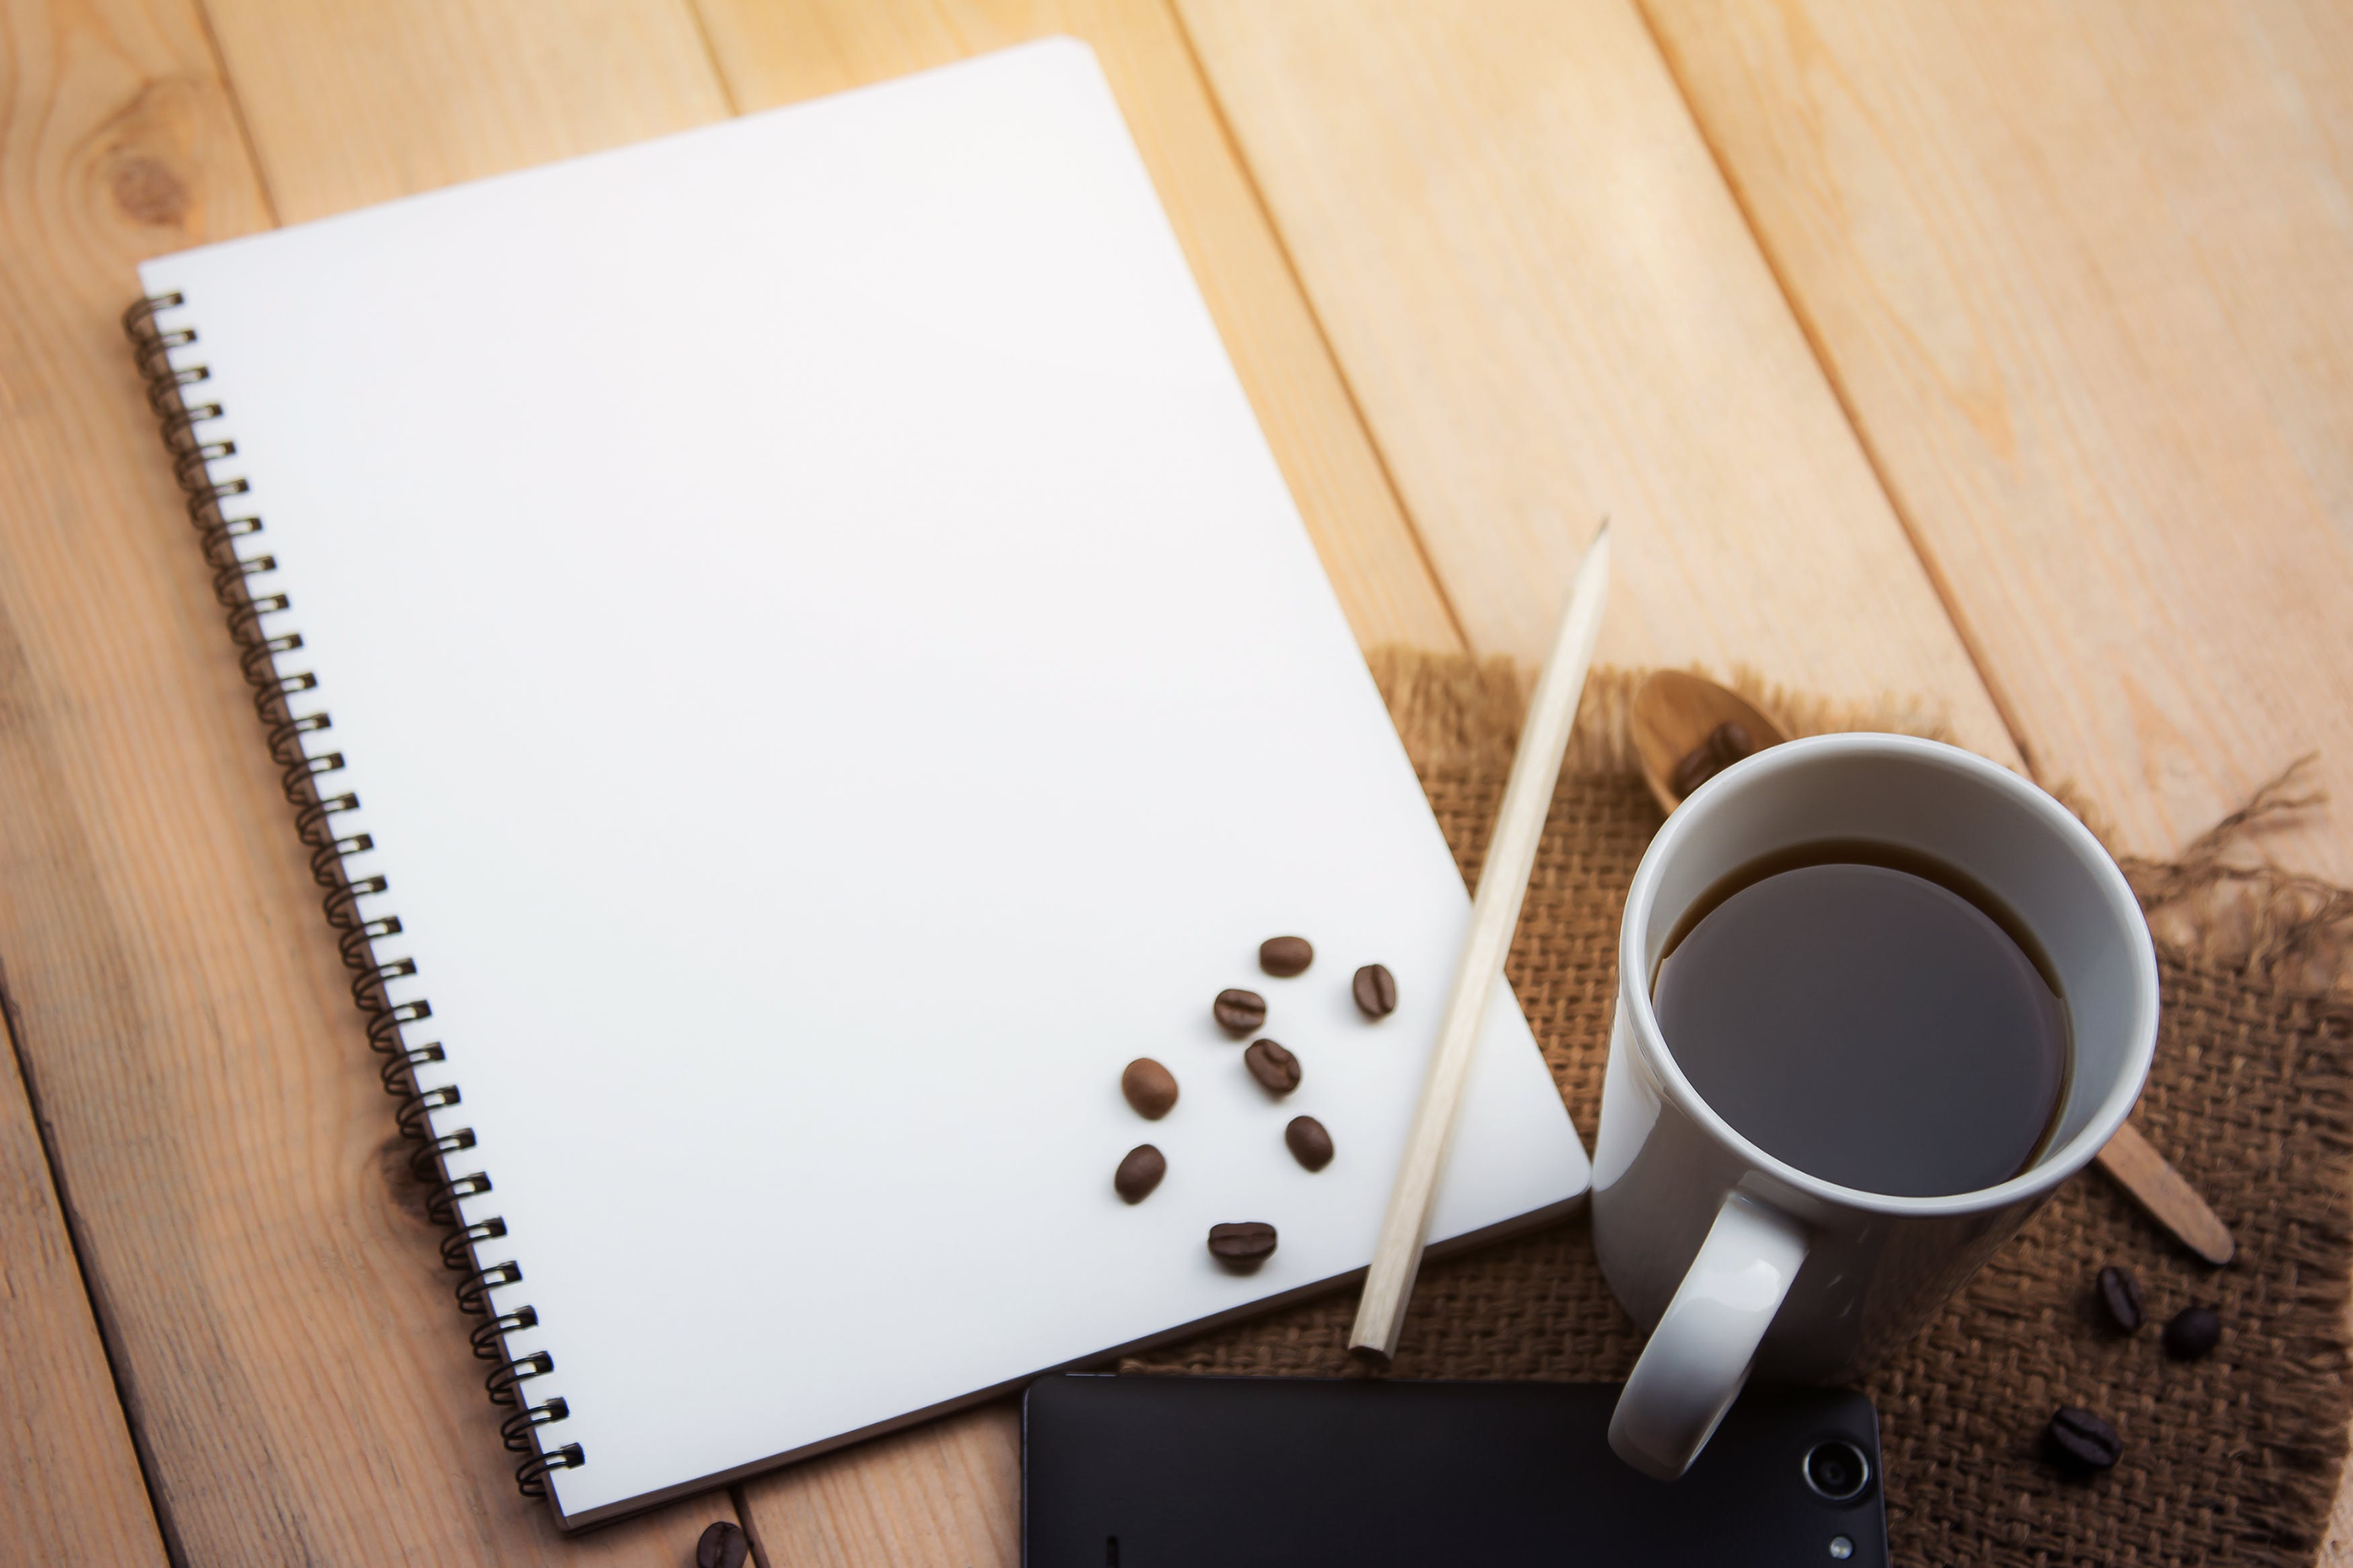 White Sketch Pad Beside Cup of Coffee